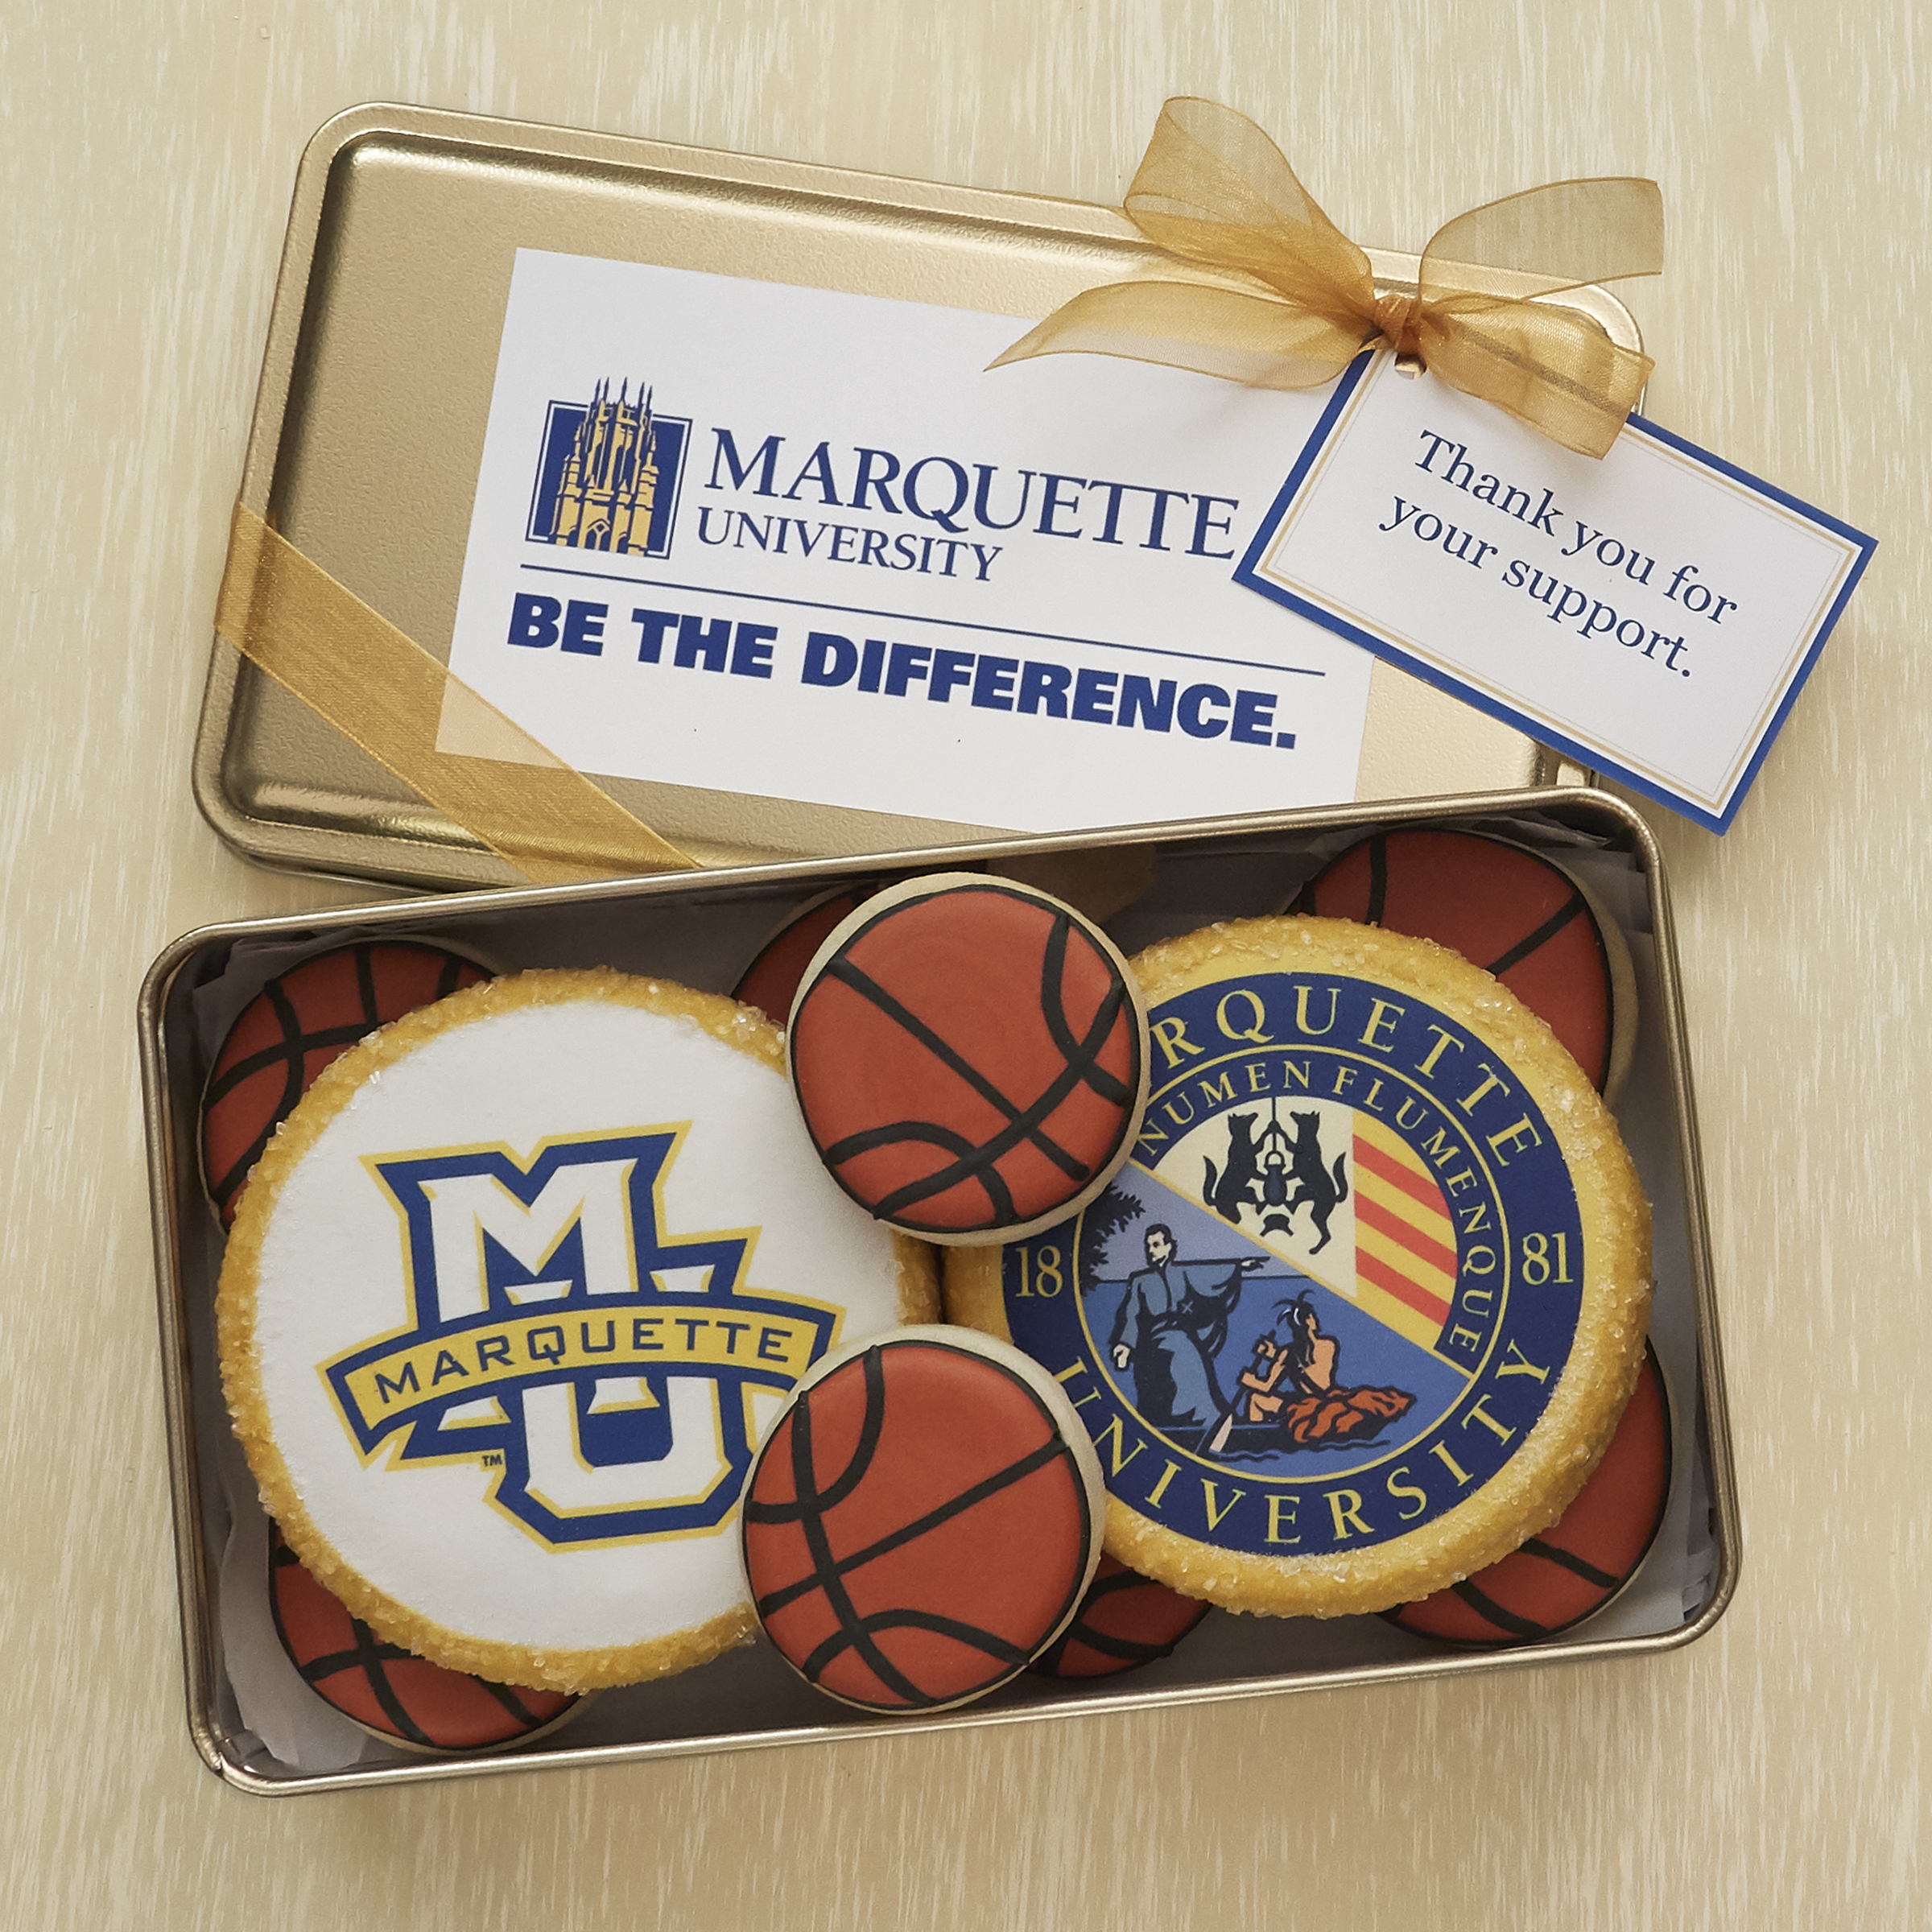 Our custom sugar cookies will make a long lasting impression when they arrive in their very own custom tin proudly displaying your logo.